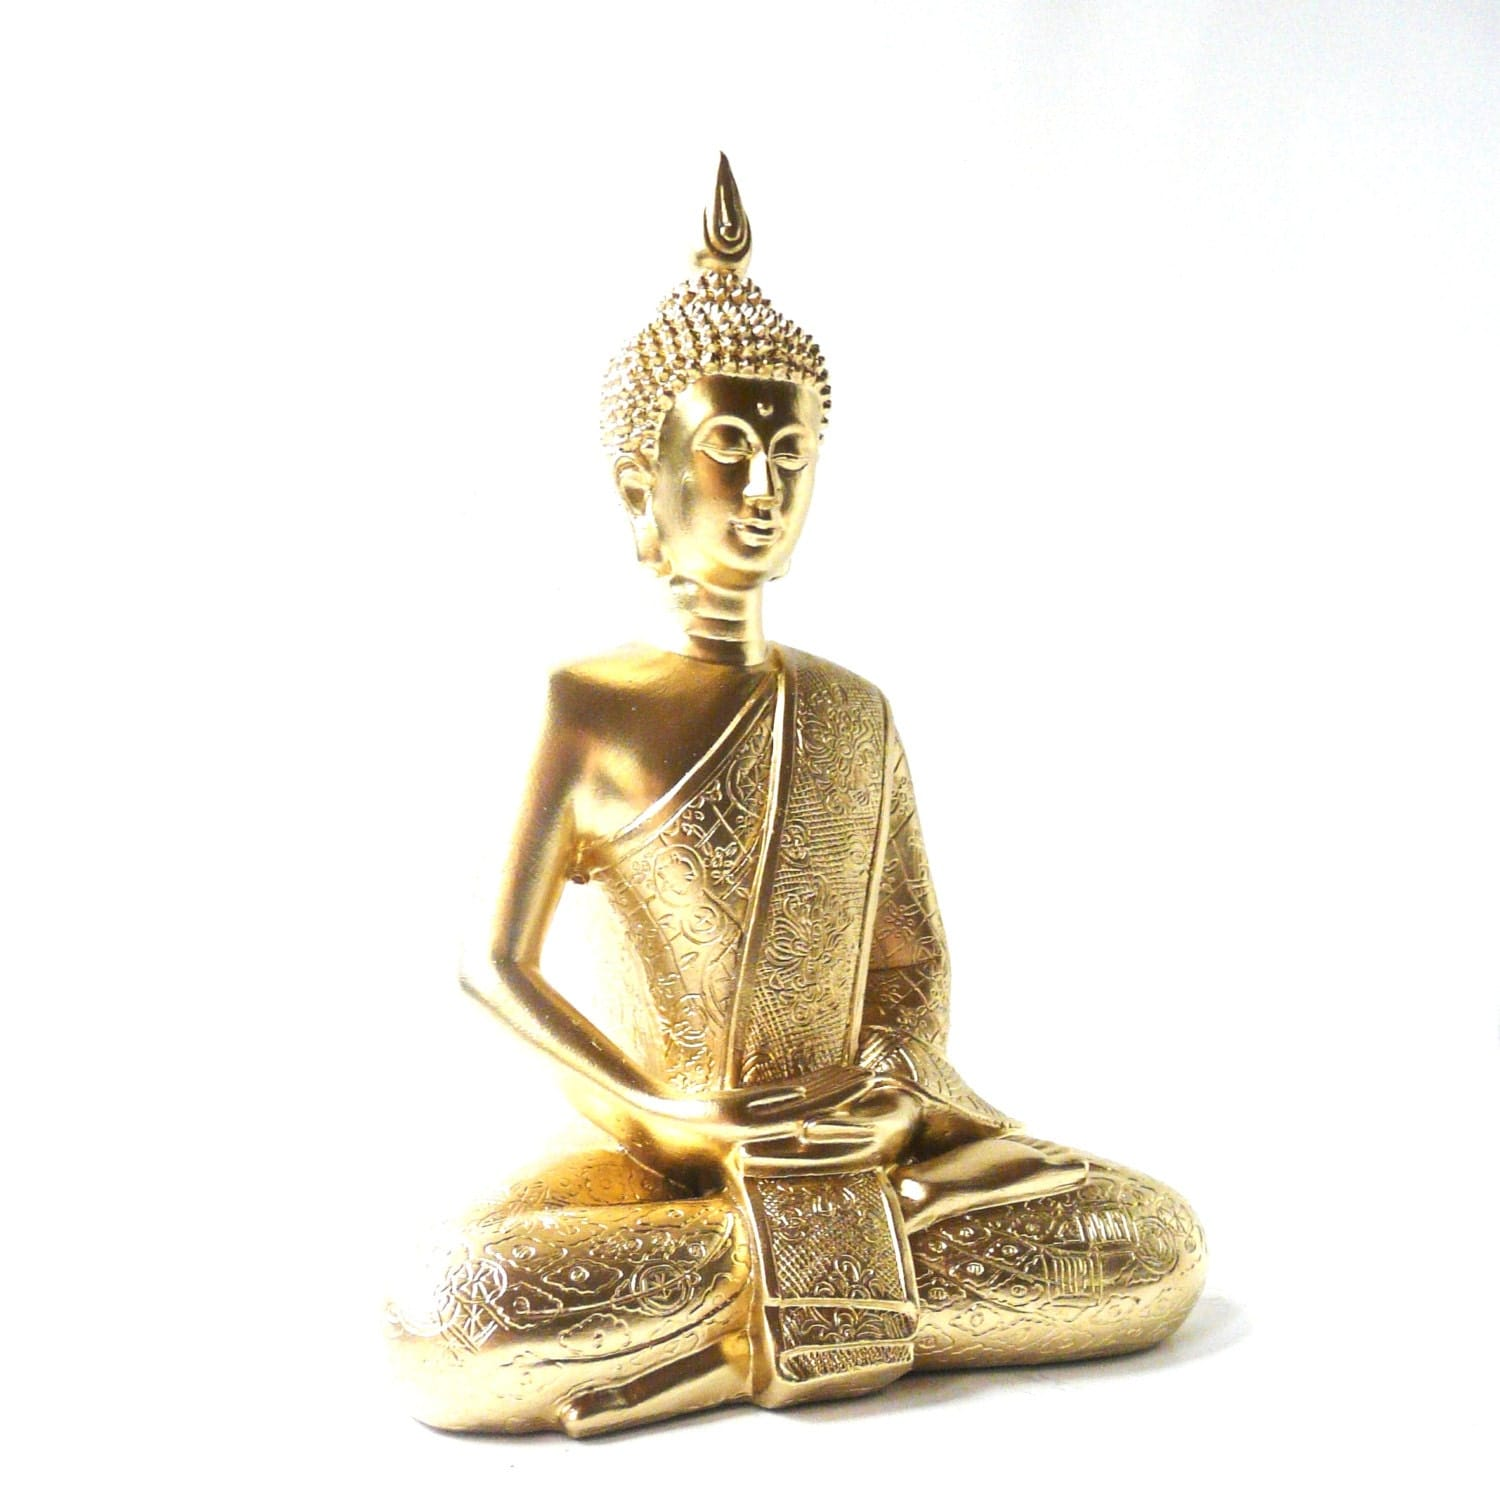 gold buddha statue bohemian home decor buddha art by nashpop. Black Bedroom Furniture Sets. Home Design Ideas